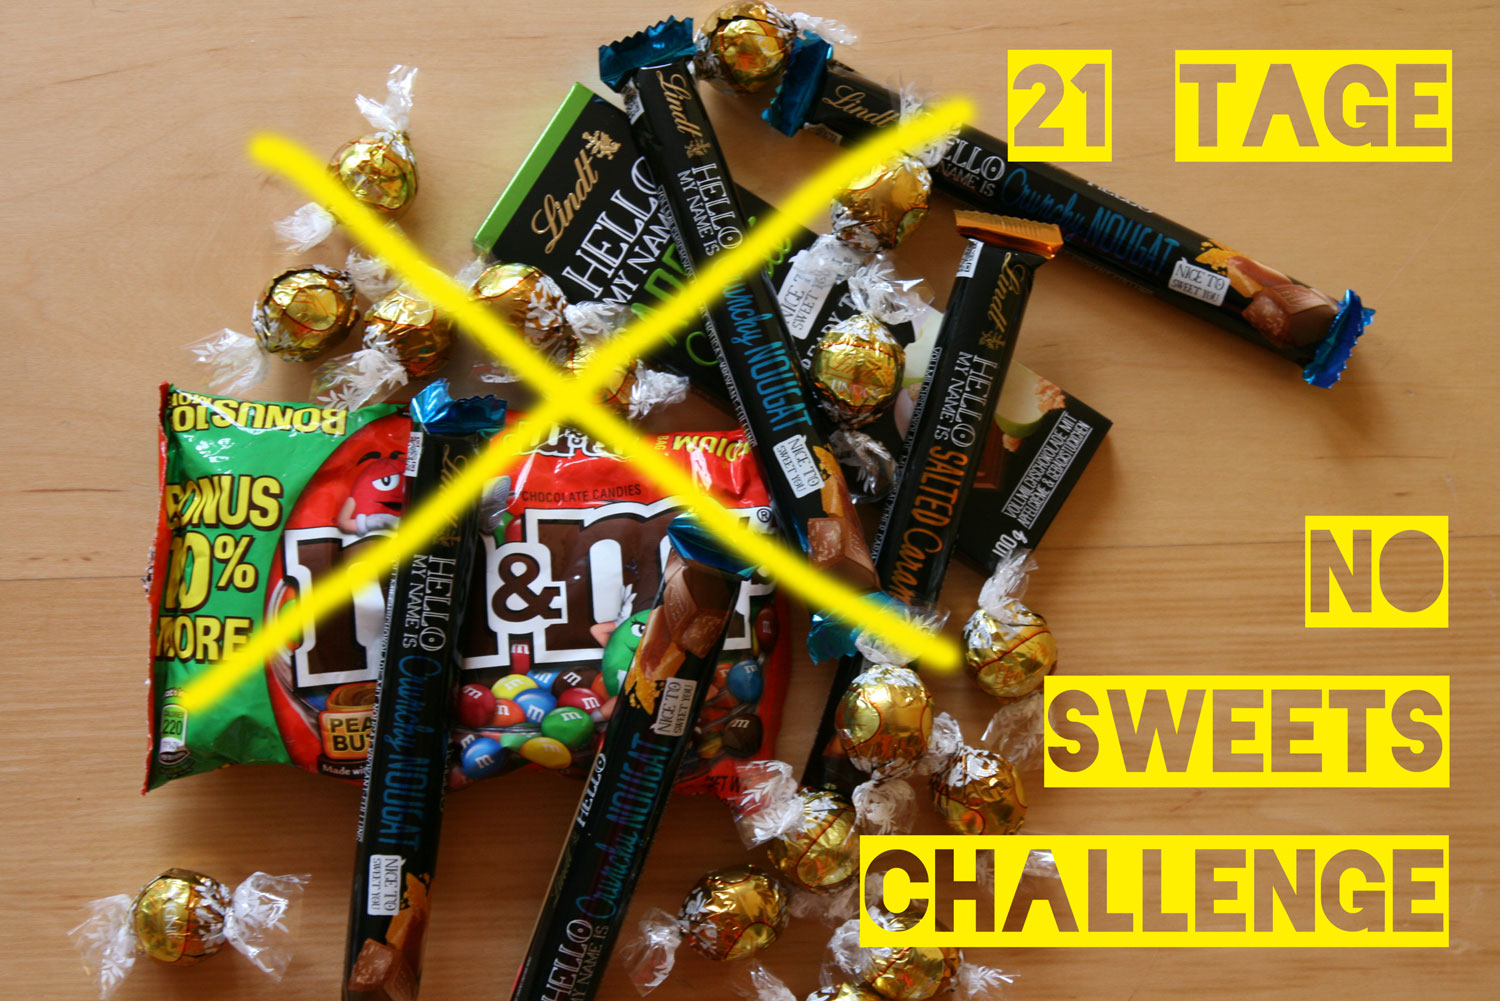 No-sweets-challenge